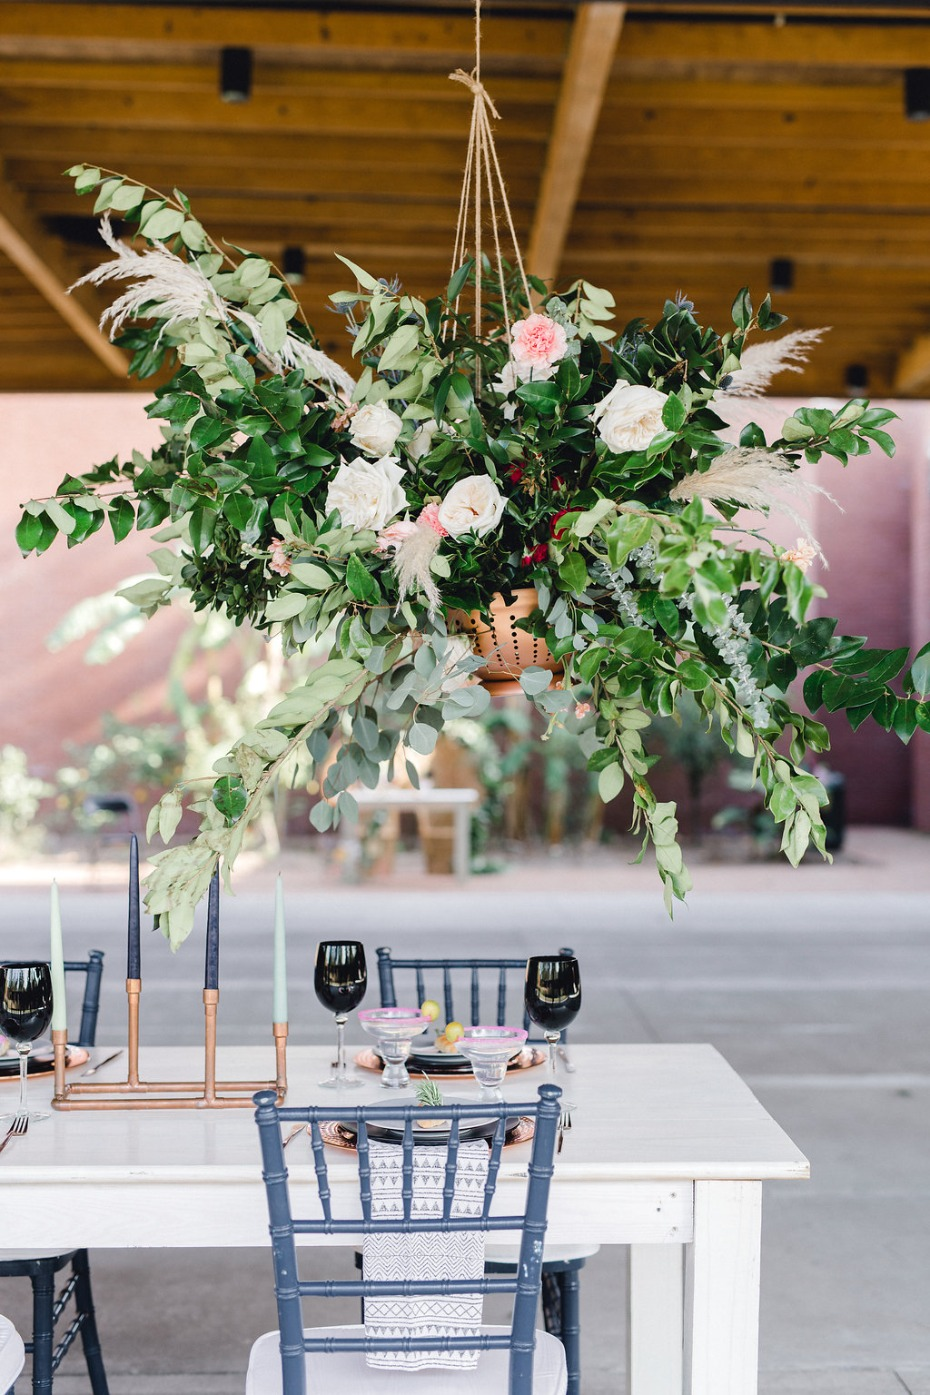 Use hanging arrangements over the reception table